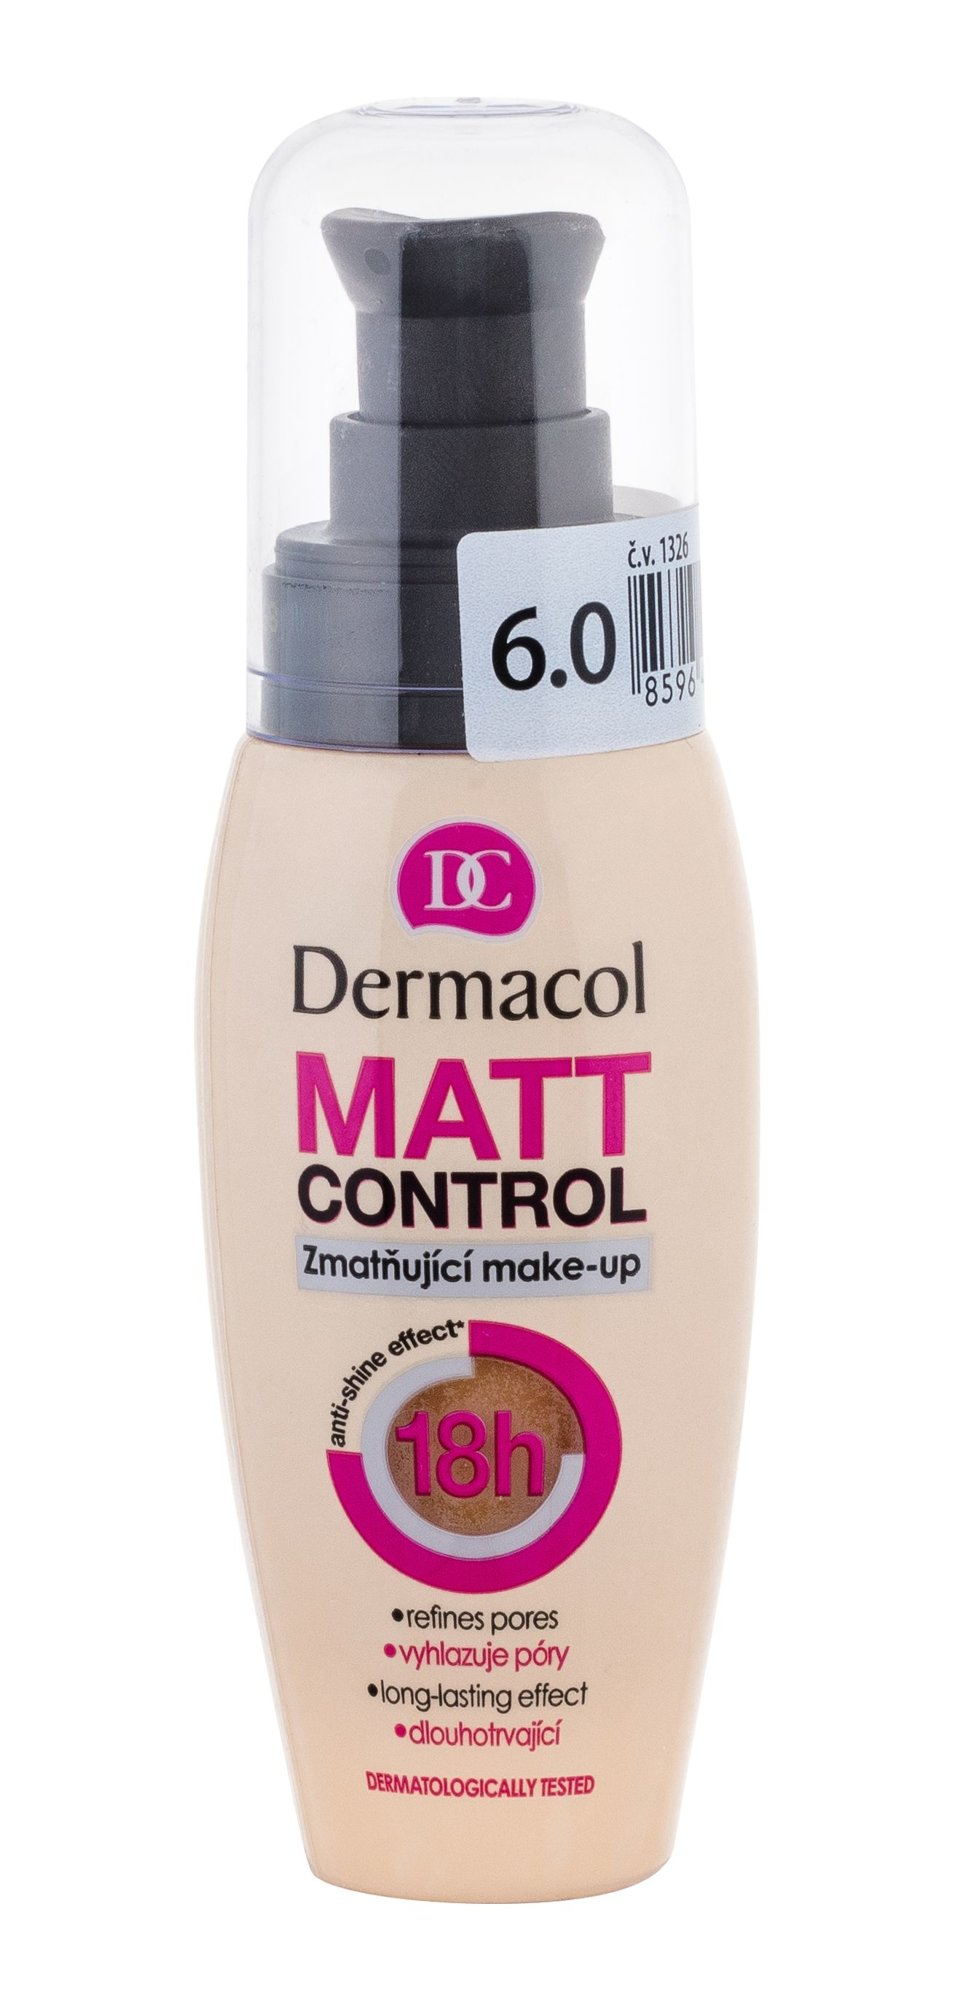 Dermacol Matt Control Makeup 30ml 6.0